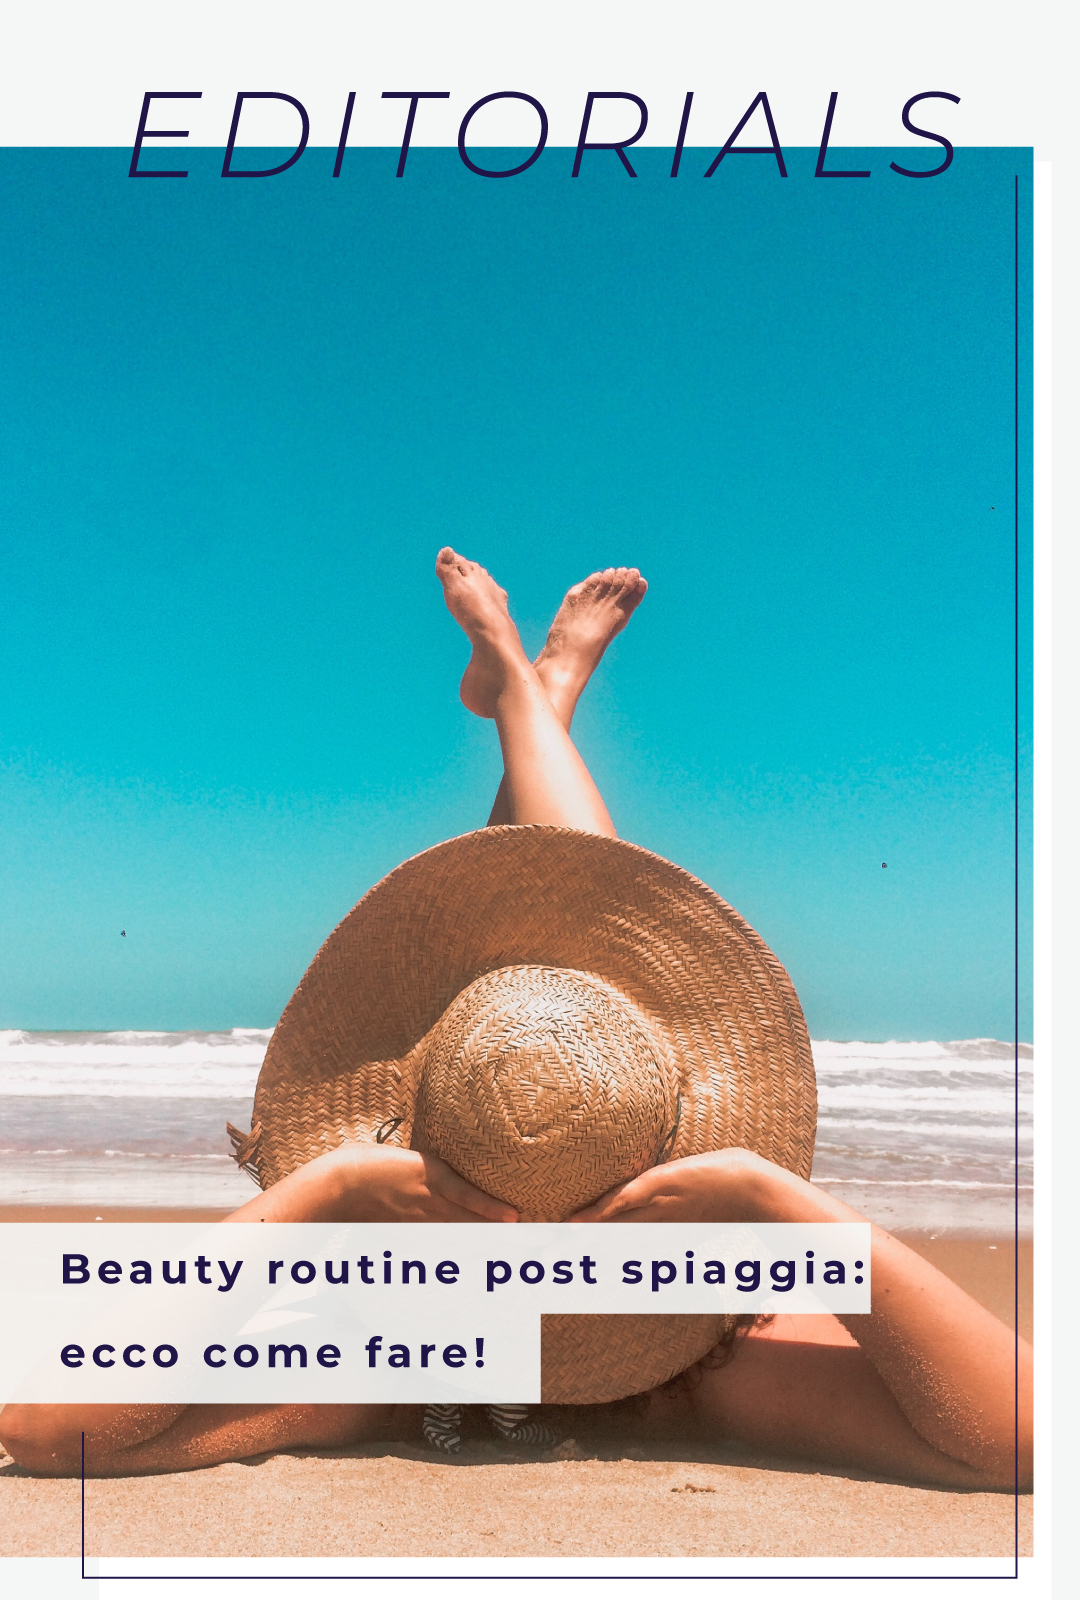 Beauty routine post spiaggia